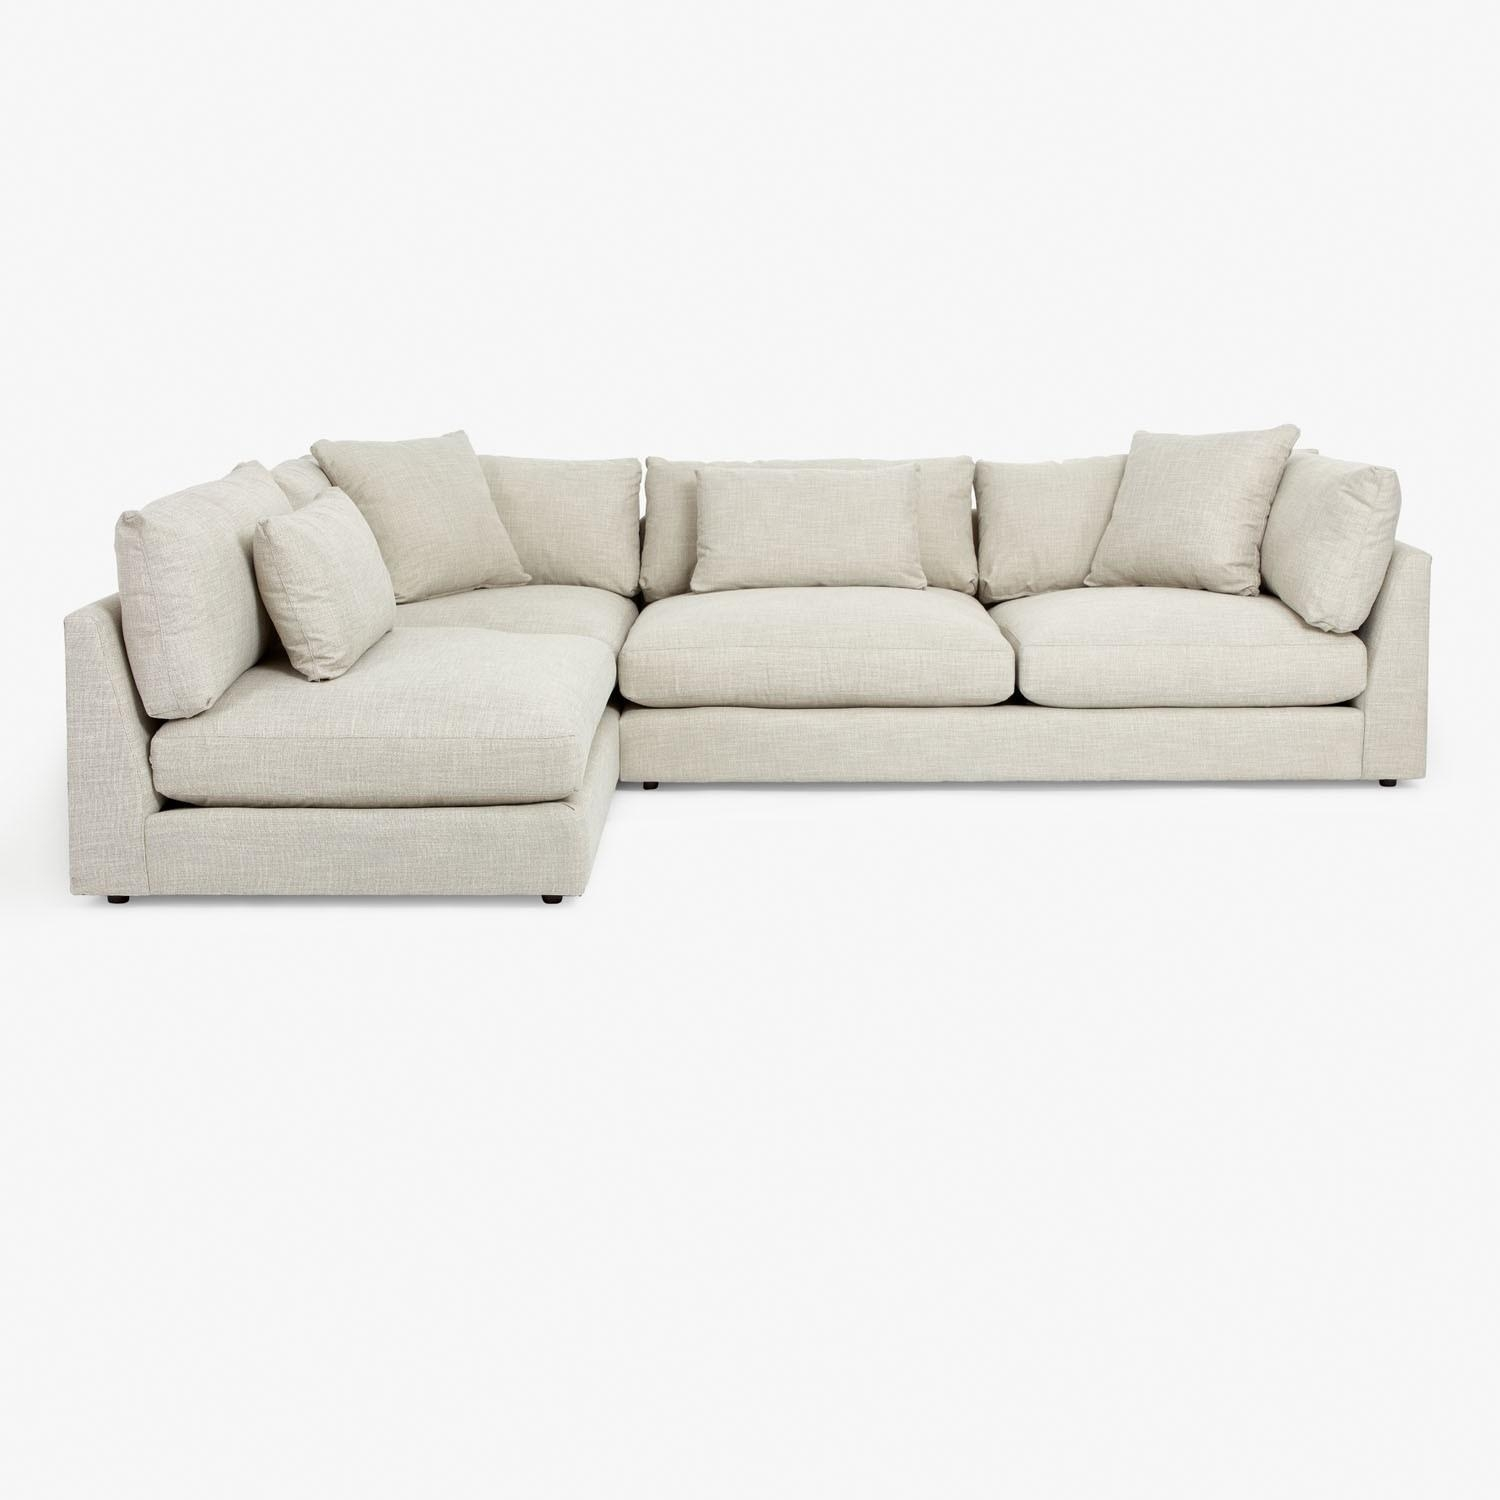 Cobble Hill Delancey Sectional – Abc Carpet & Home Within Cobble Hill Sofas (View 13 of 20)